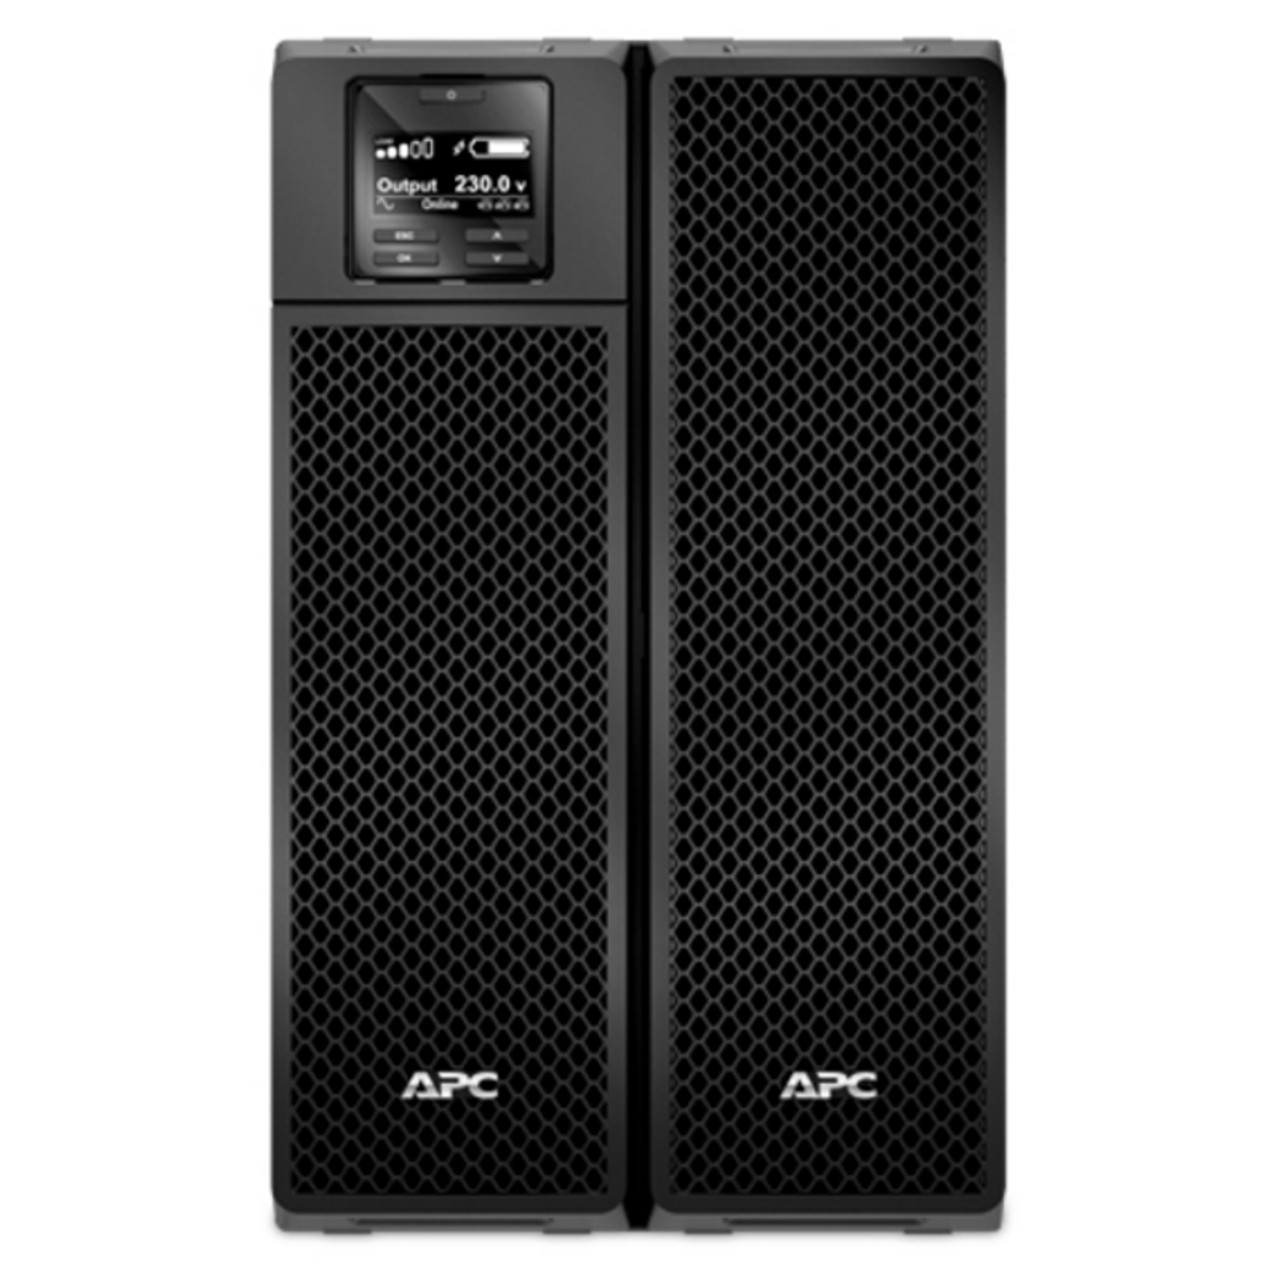 Image for APC SRT10KXLI SRT 10000VA 230V Sinewave Smart UPS CX Computer Superstore